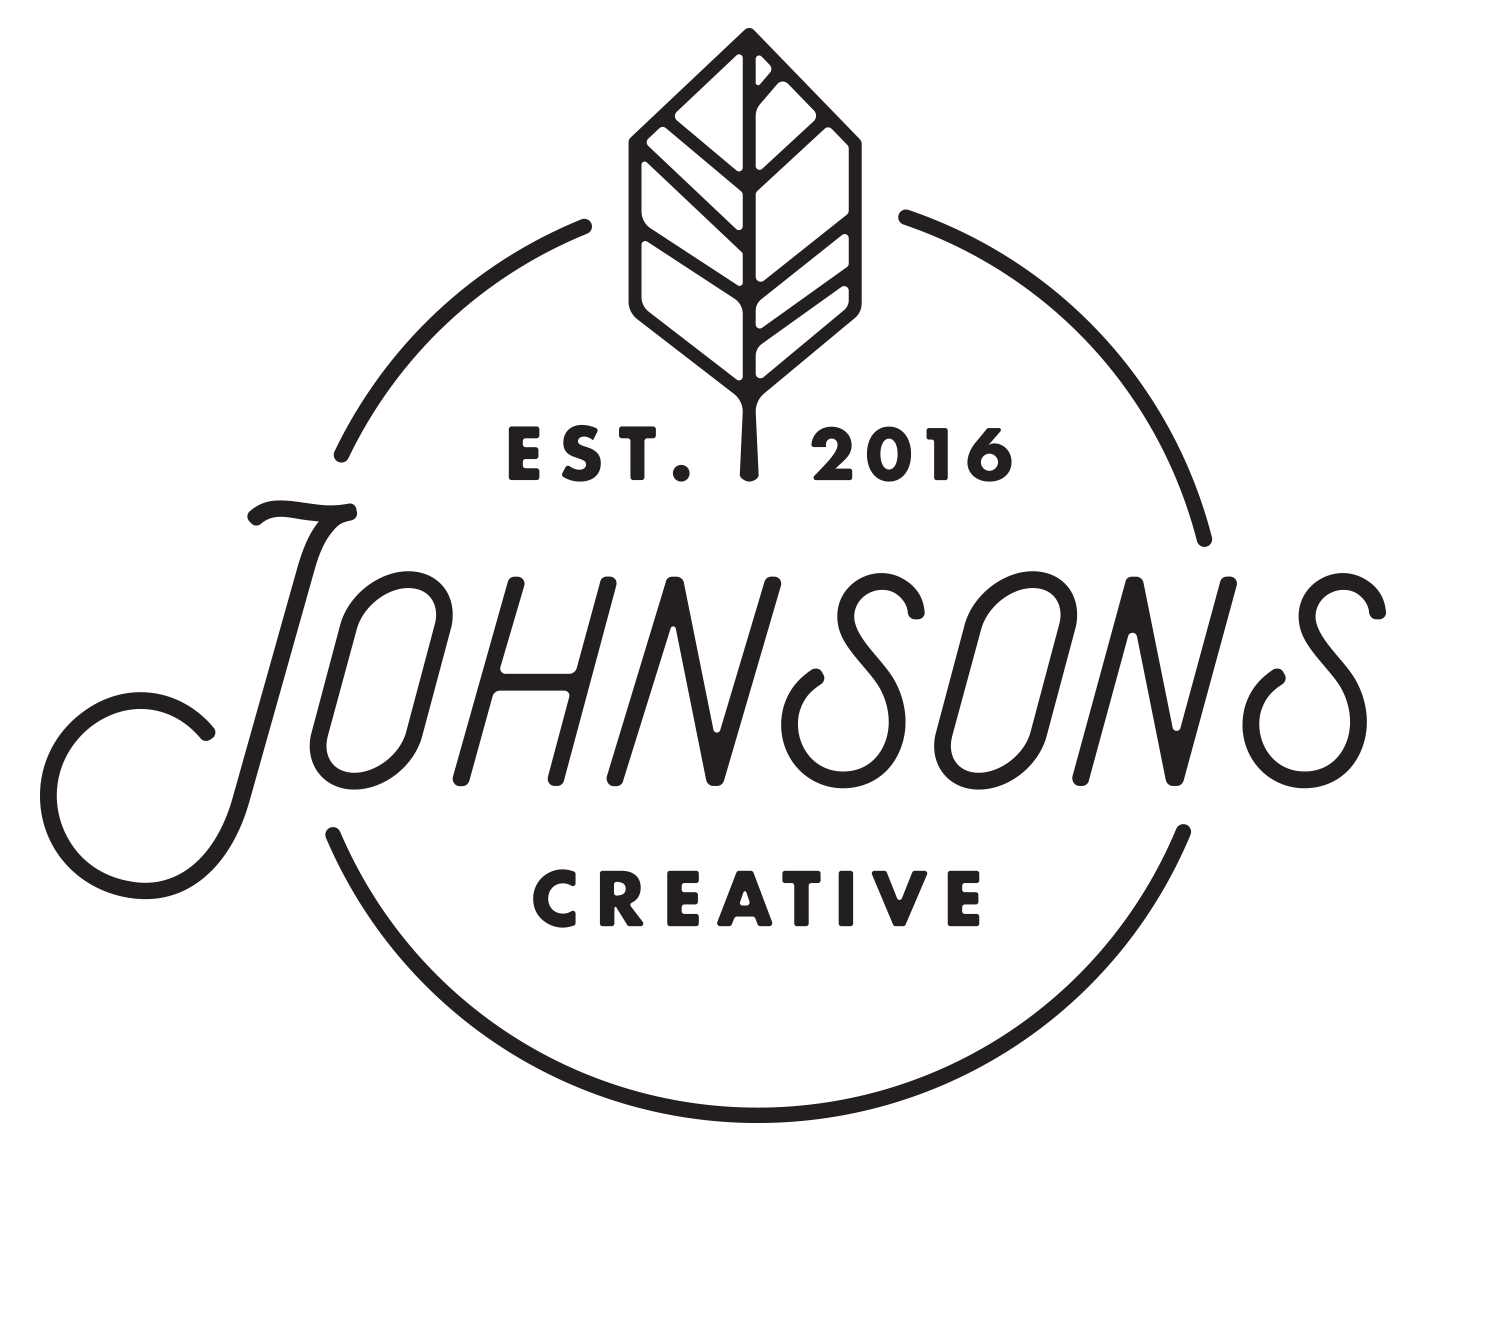 Johnsons Creative